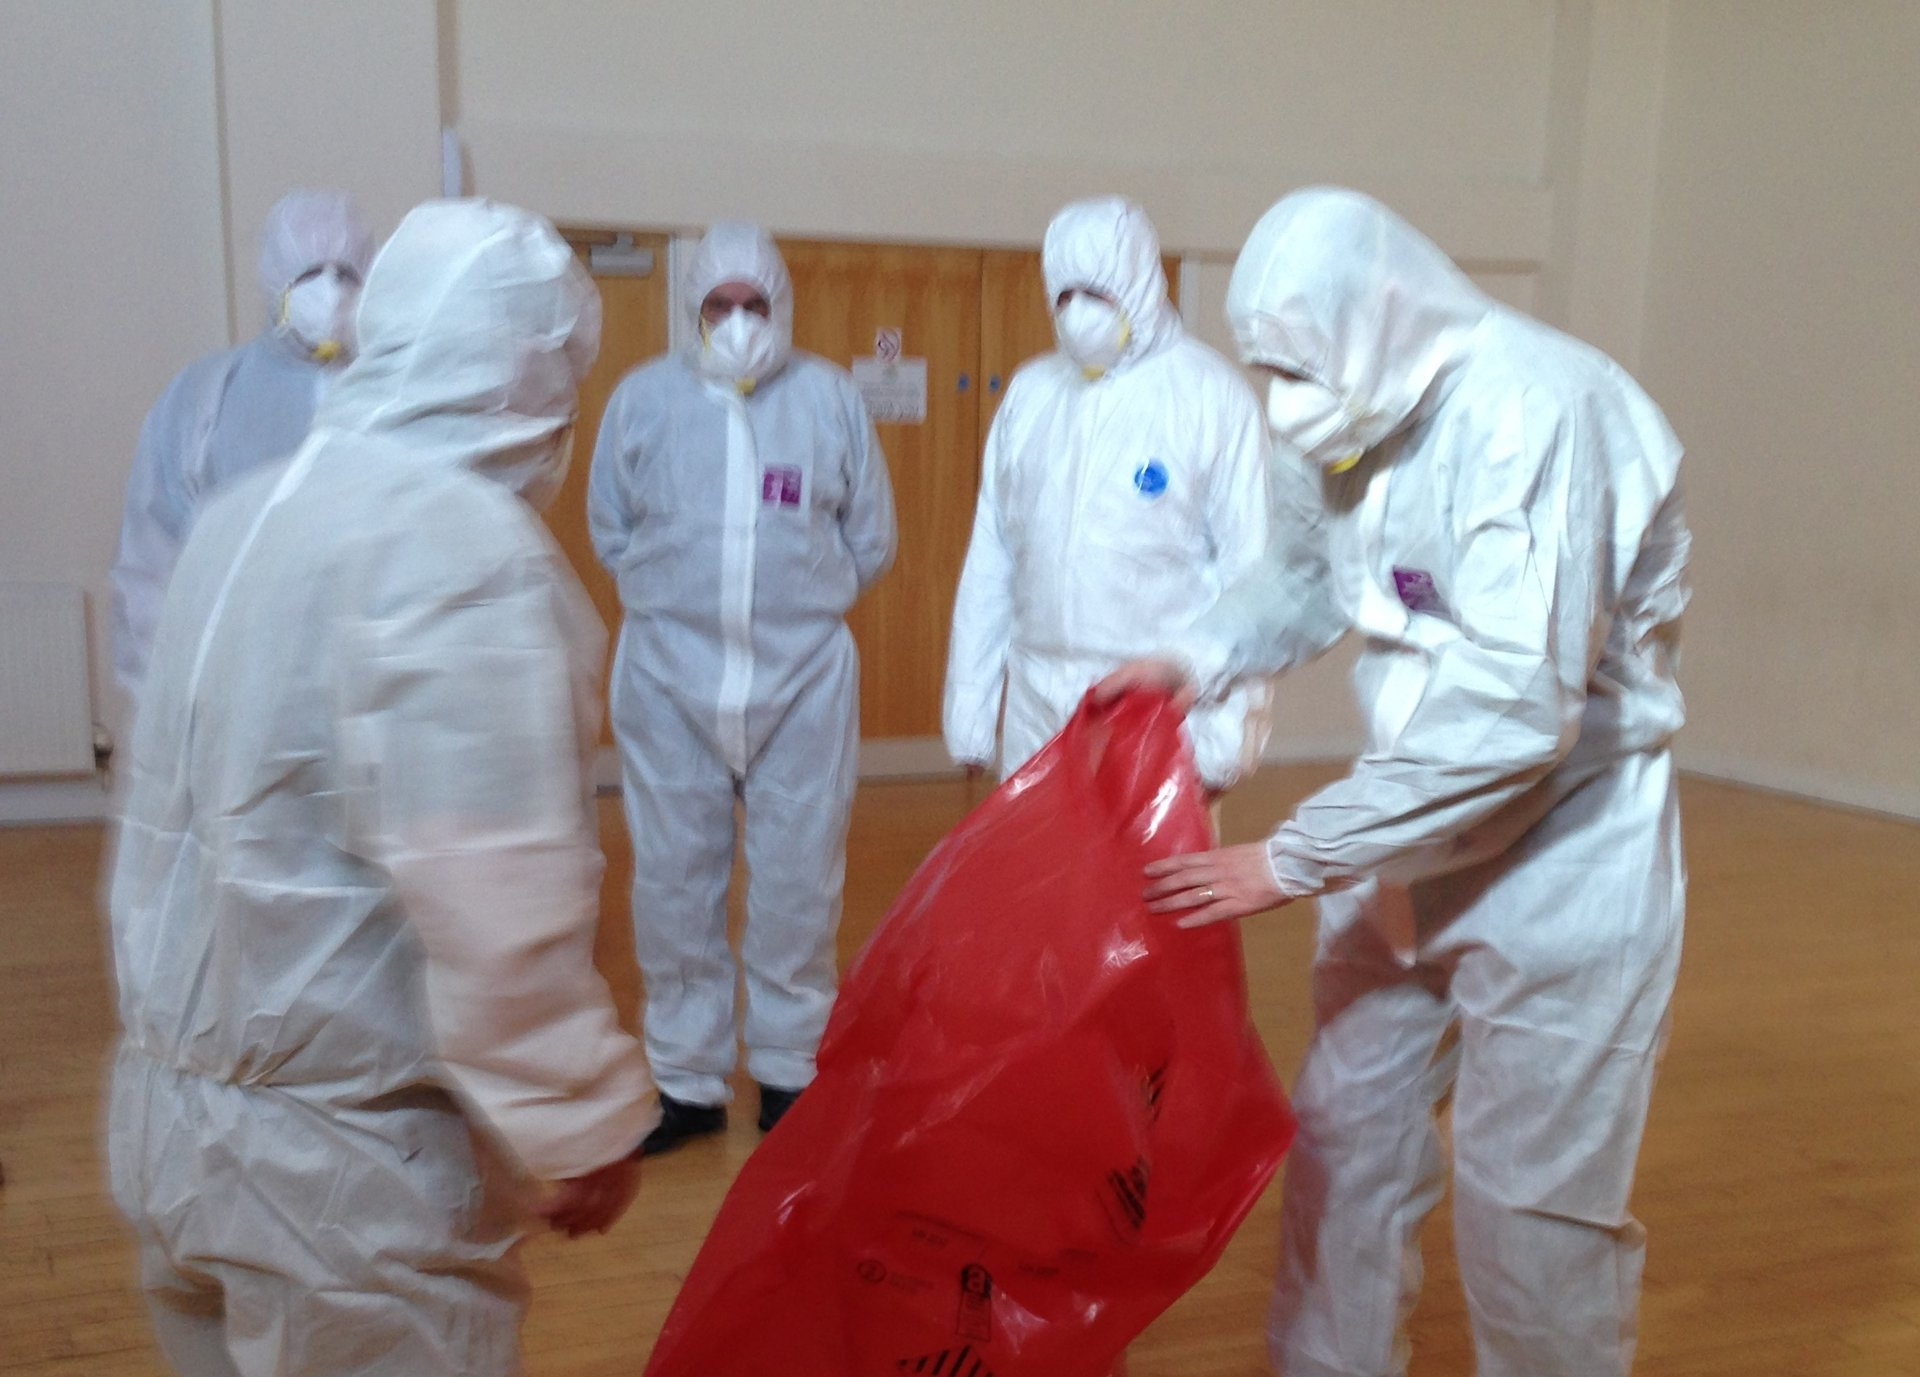 Training participants wearing white protection suits